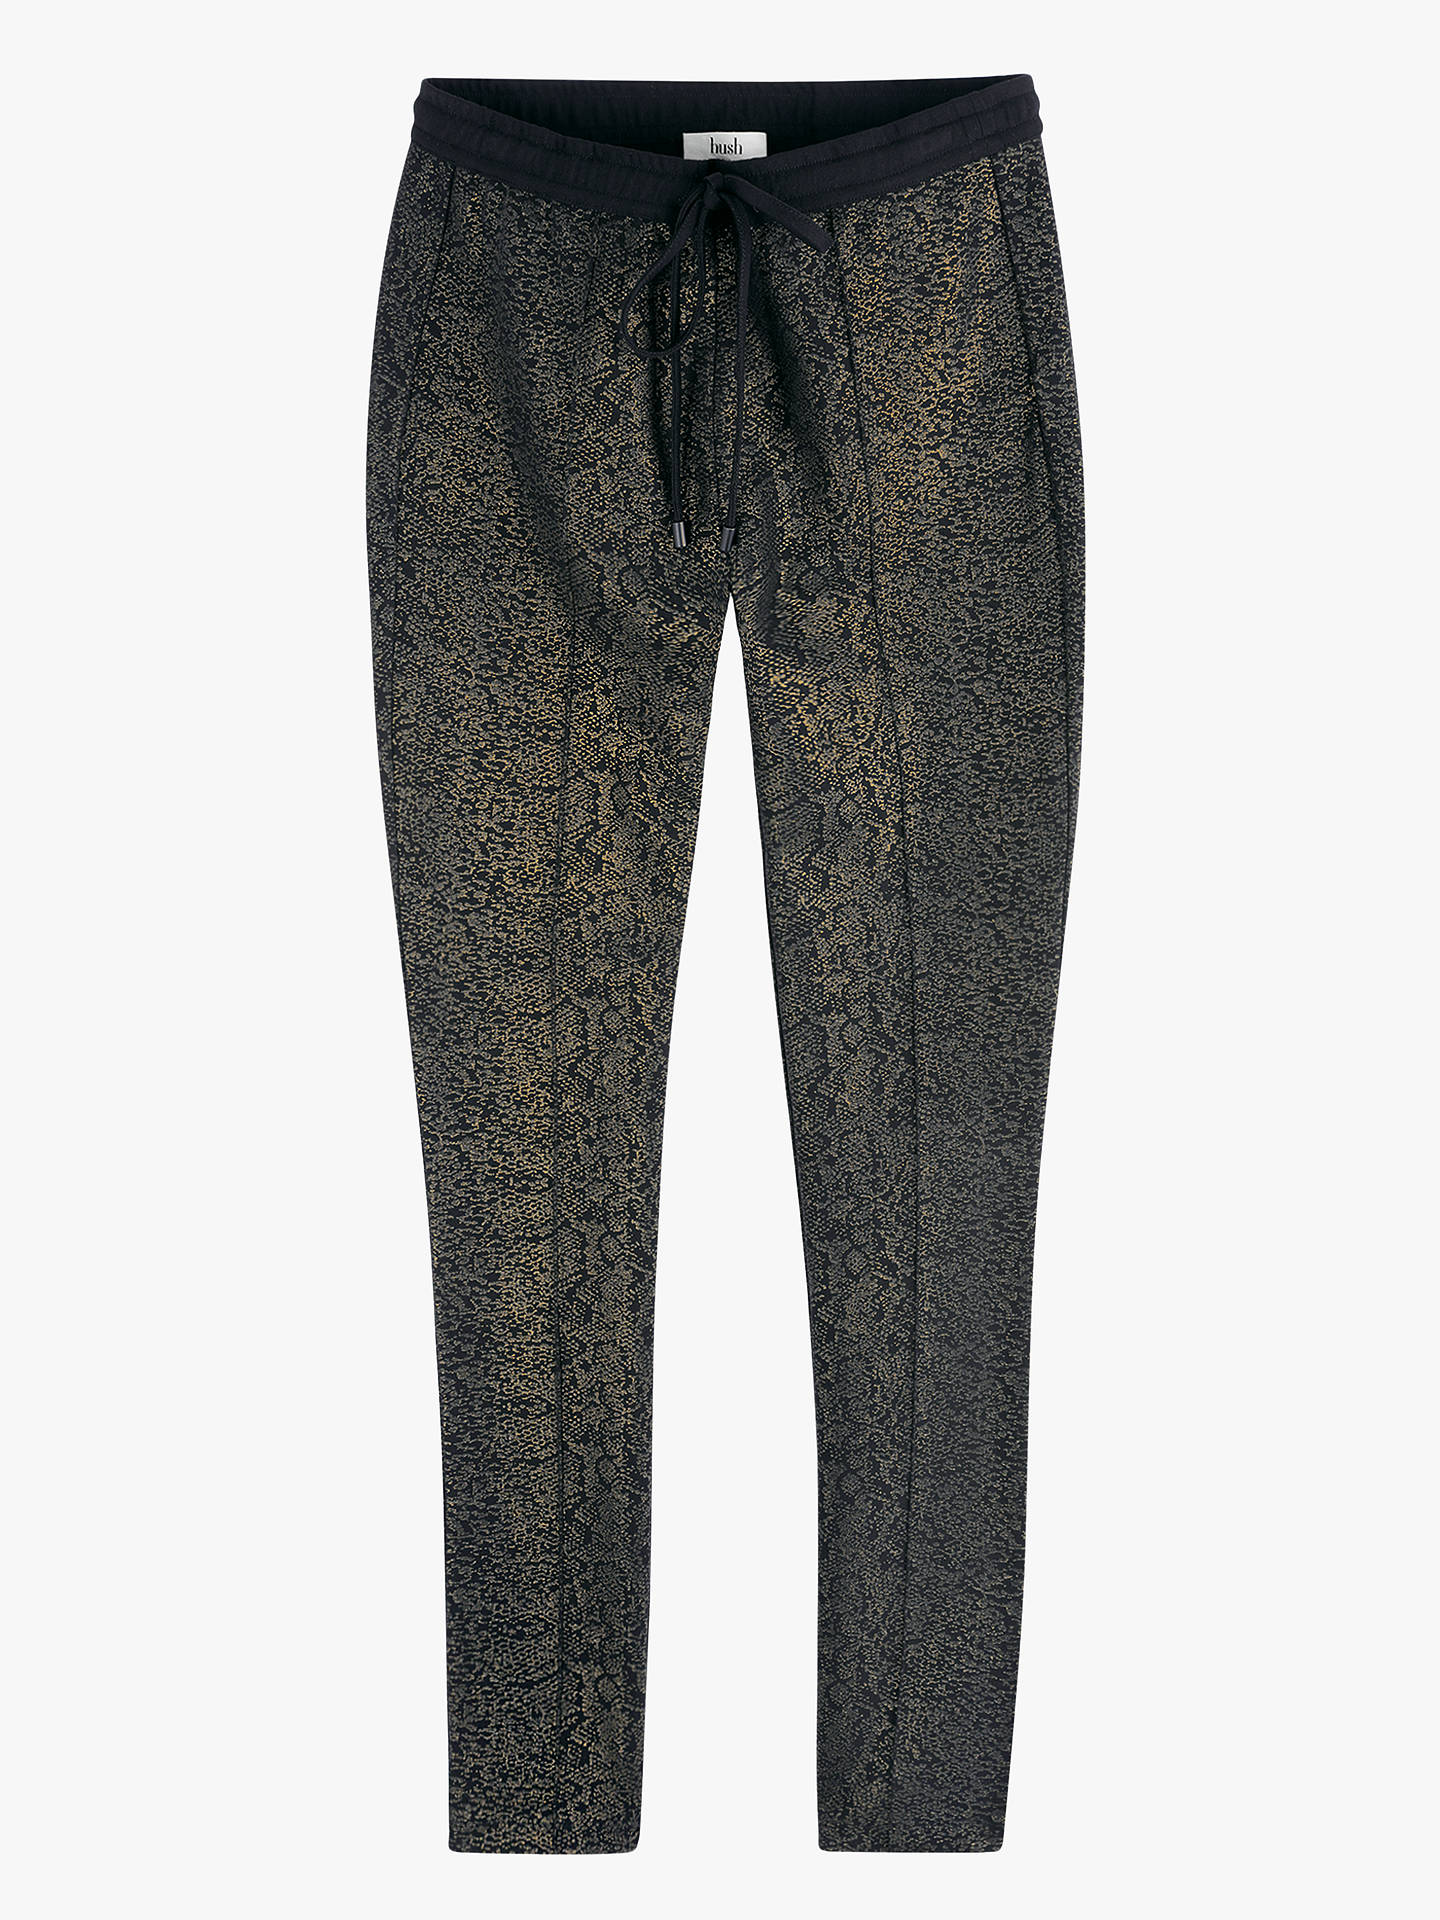 Buy hush Gold Foil Snake Print Trousers, Gold Foil Snake, XS Online at johnlewis.com